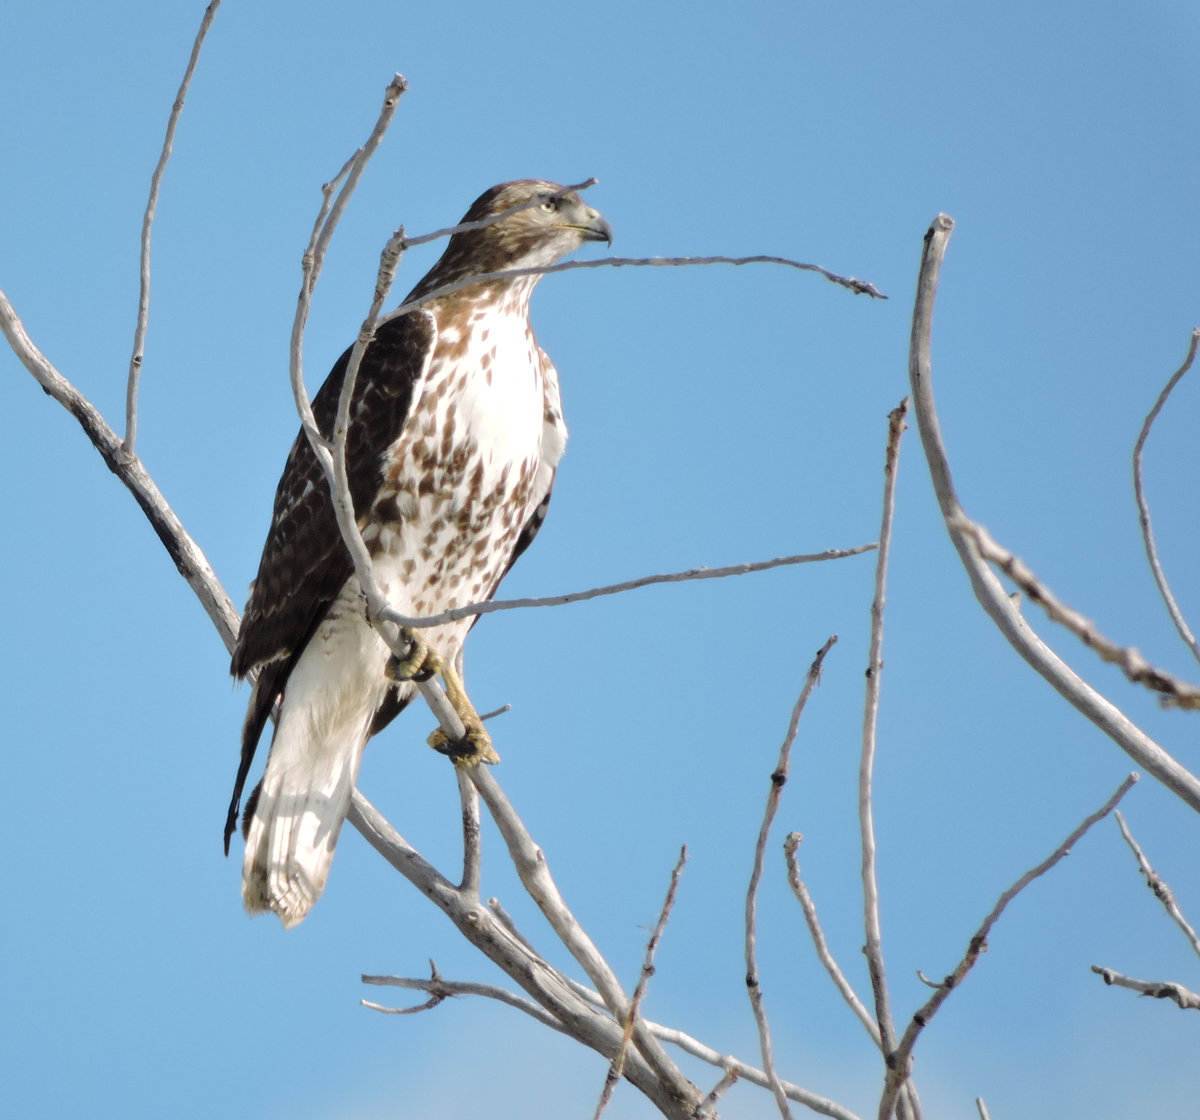 Red Tailed Hawk Subspecies Help Me Identify A North American Bird Whatbird Community